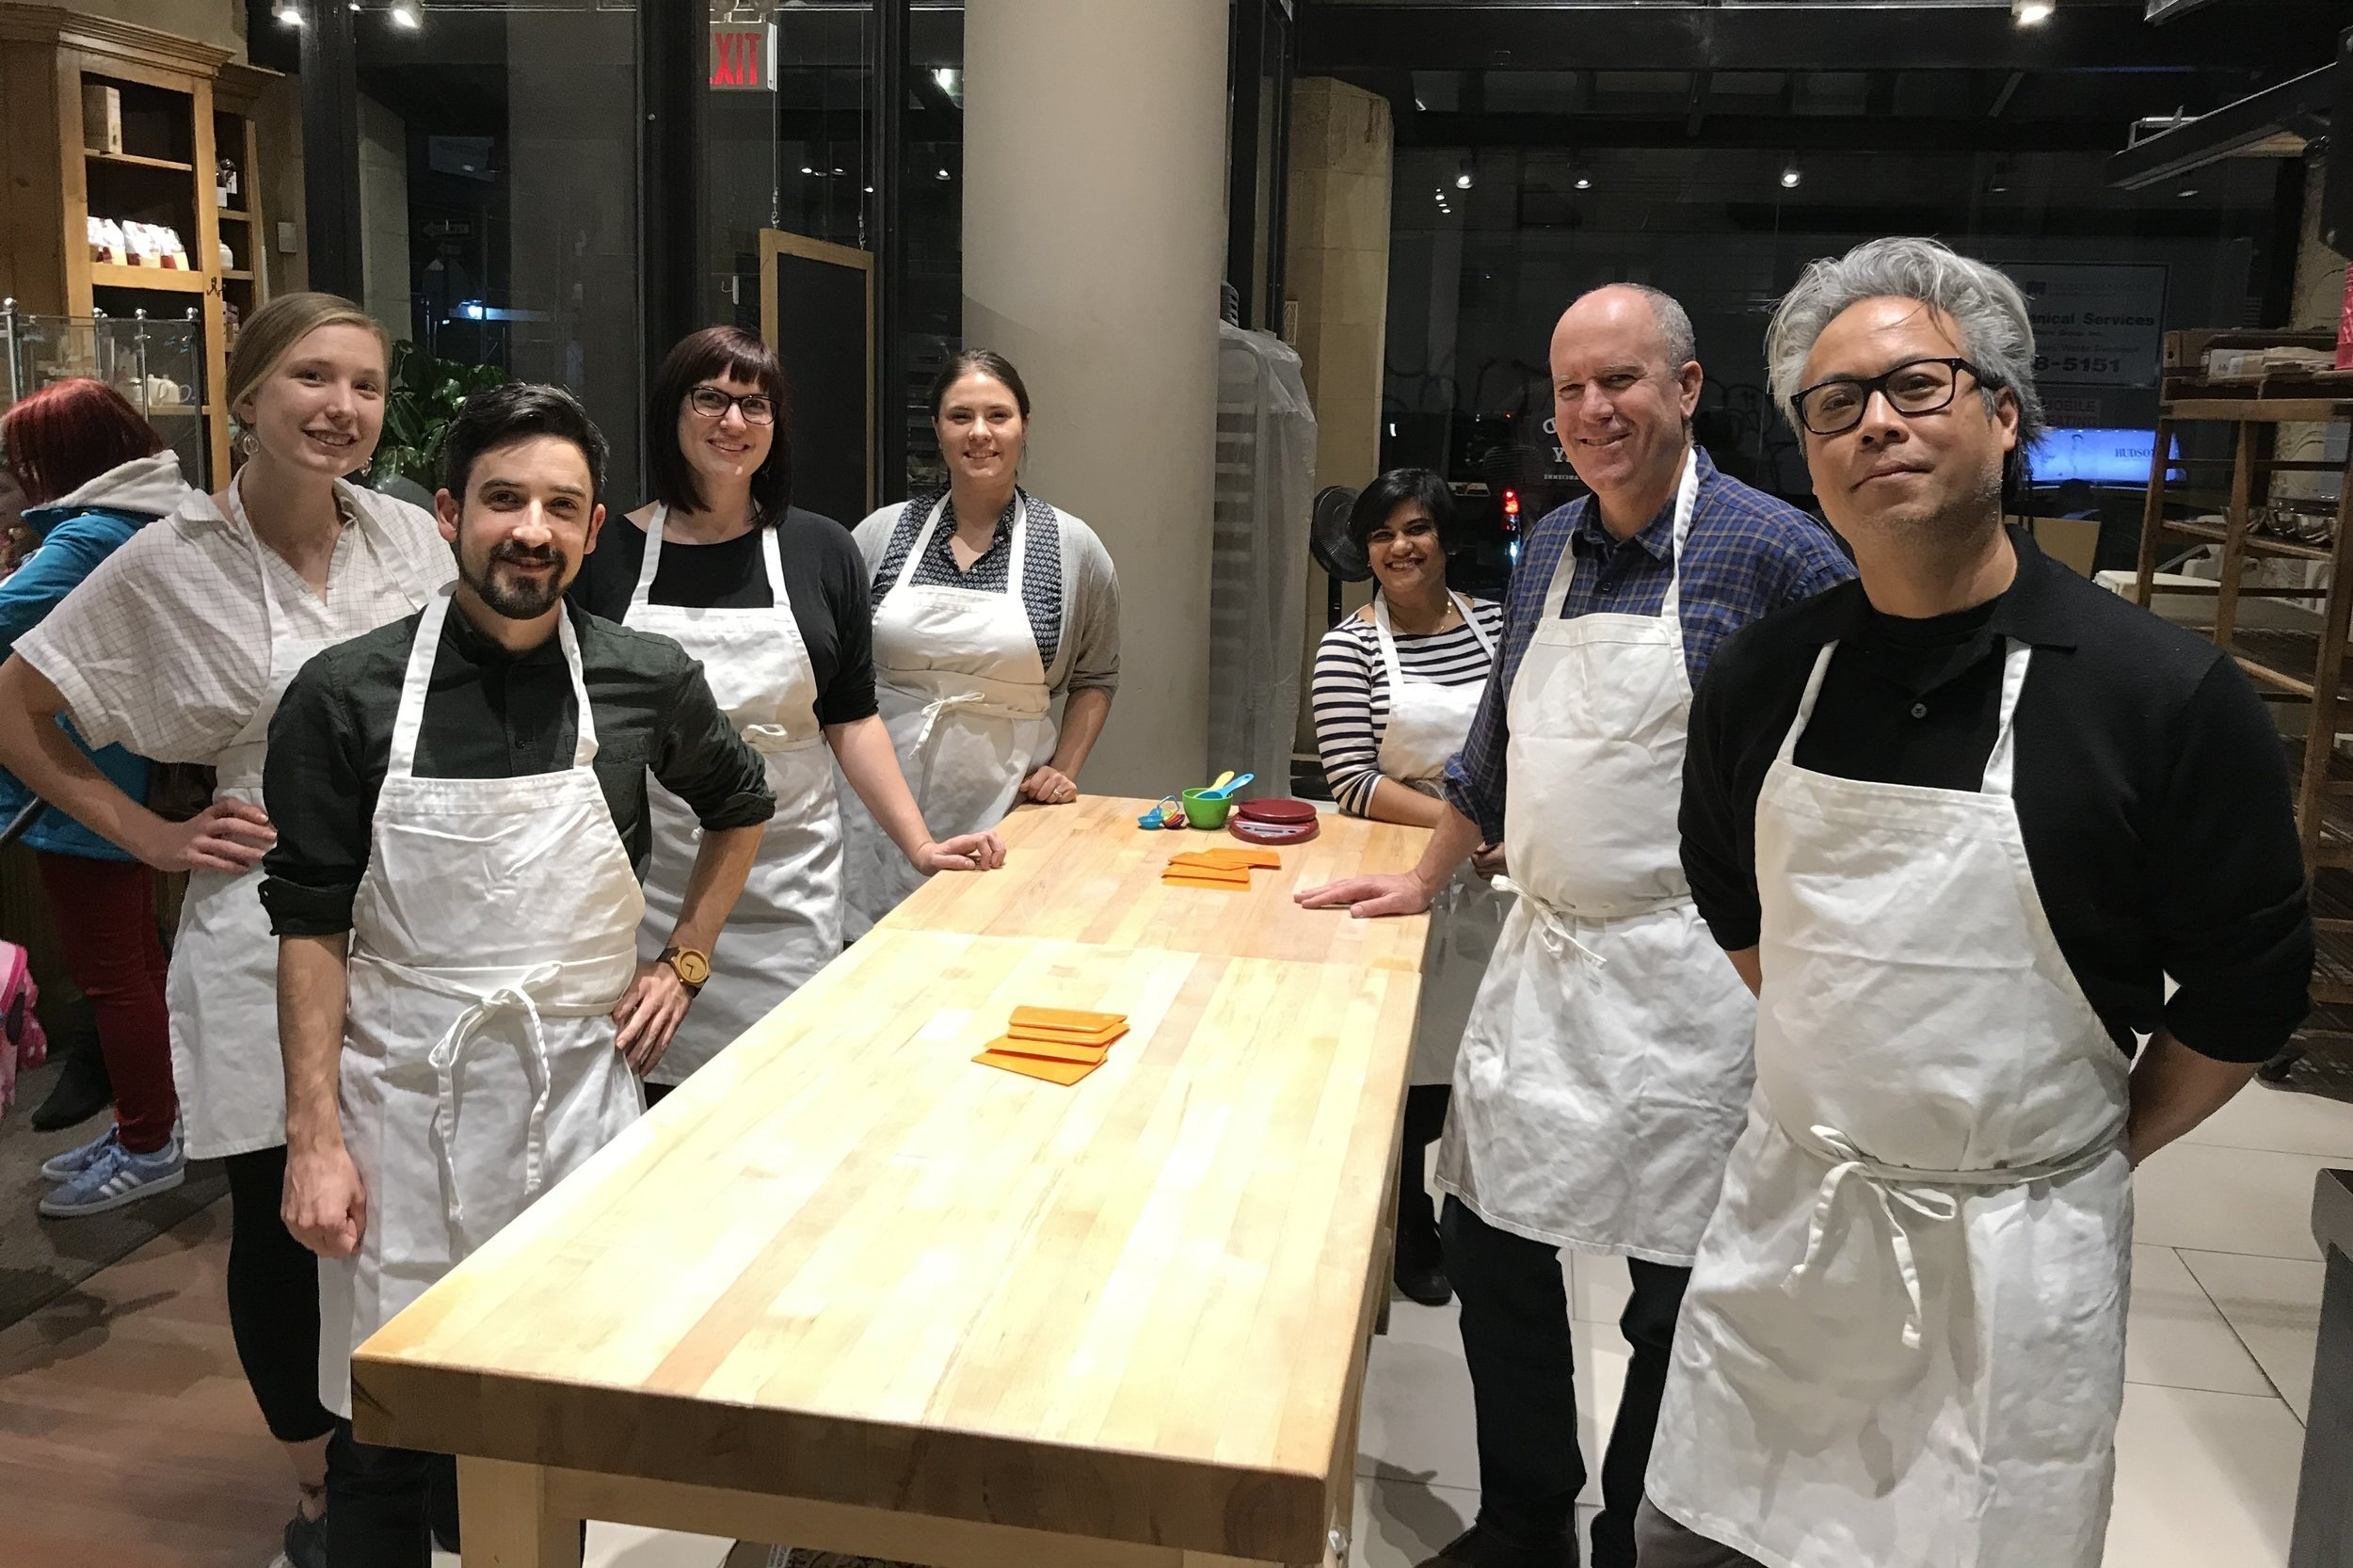 Loci Makes Pizza - November 10, 2018Team Loci kicks back after work and learns to make pizza at @lepainquotidien